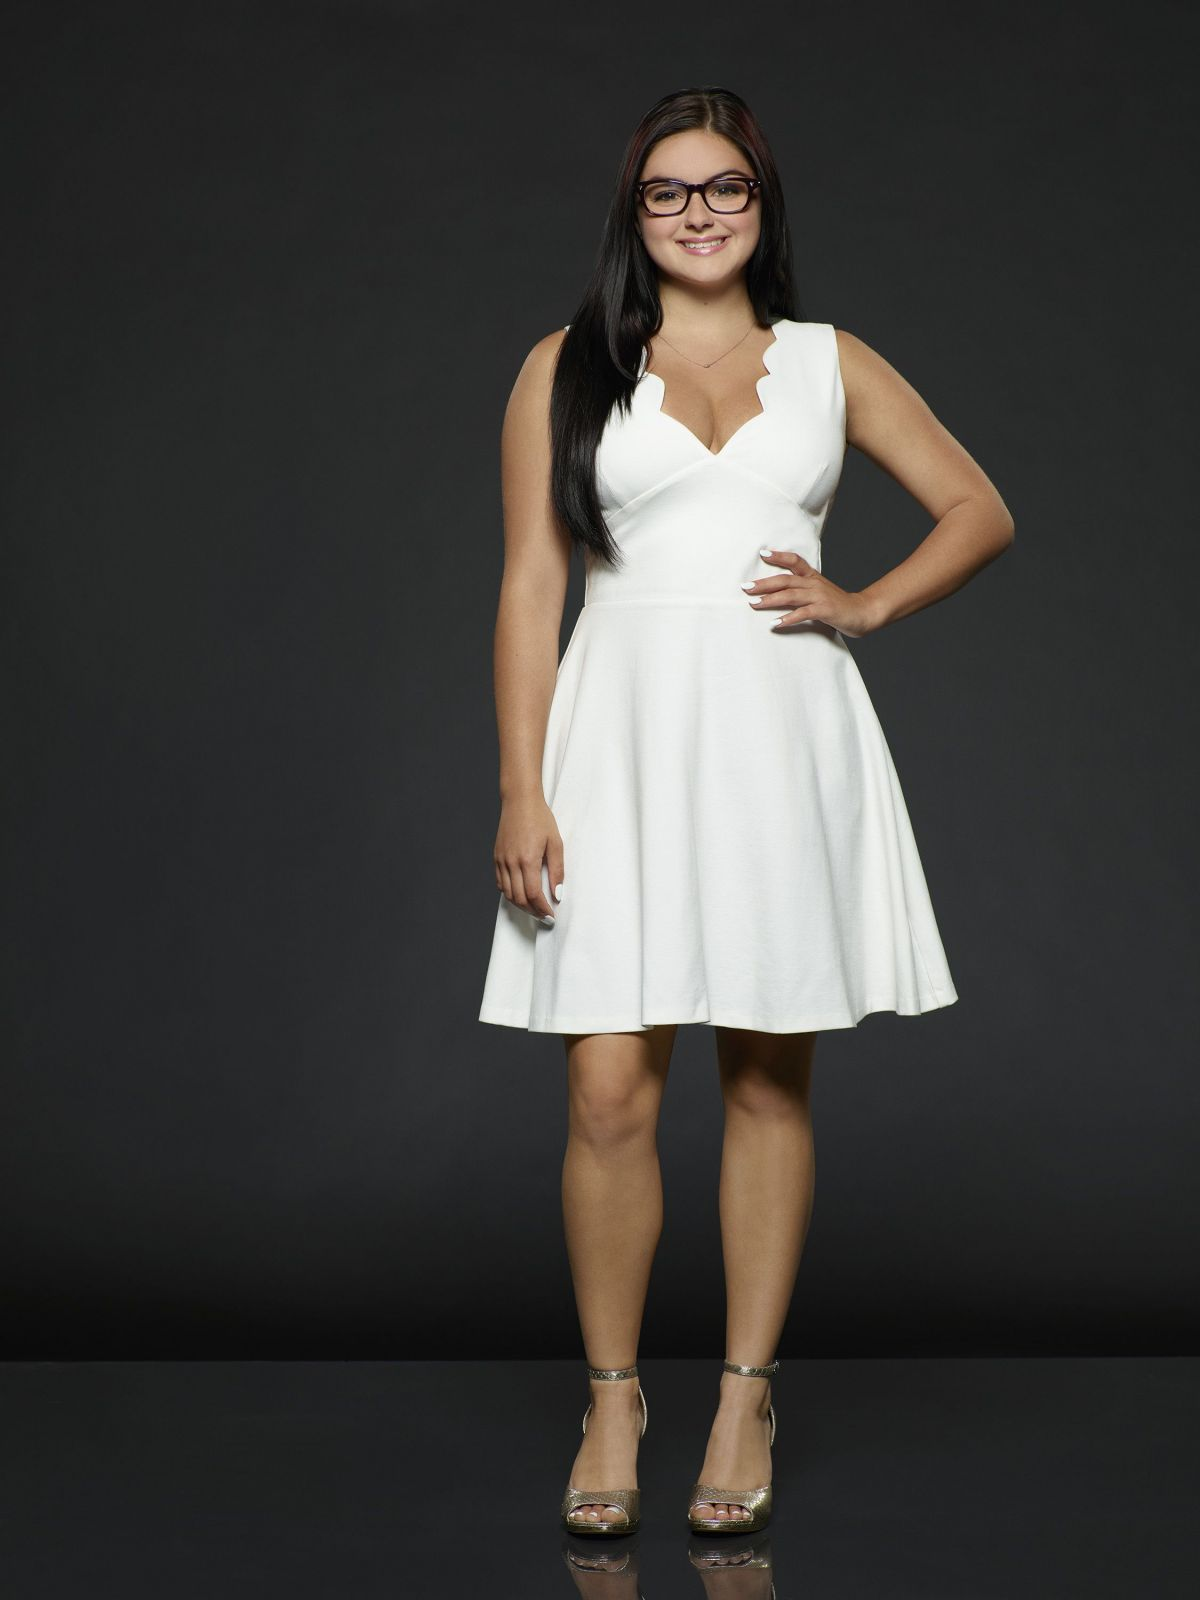 ARIEL WINTER for Modern Family, Season 8 Promos - HawtCelebs